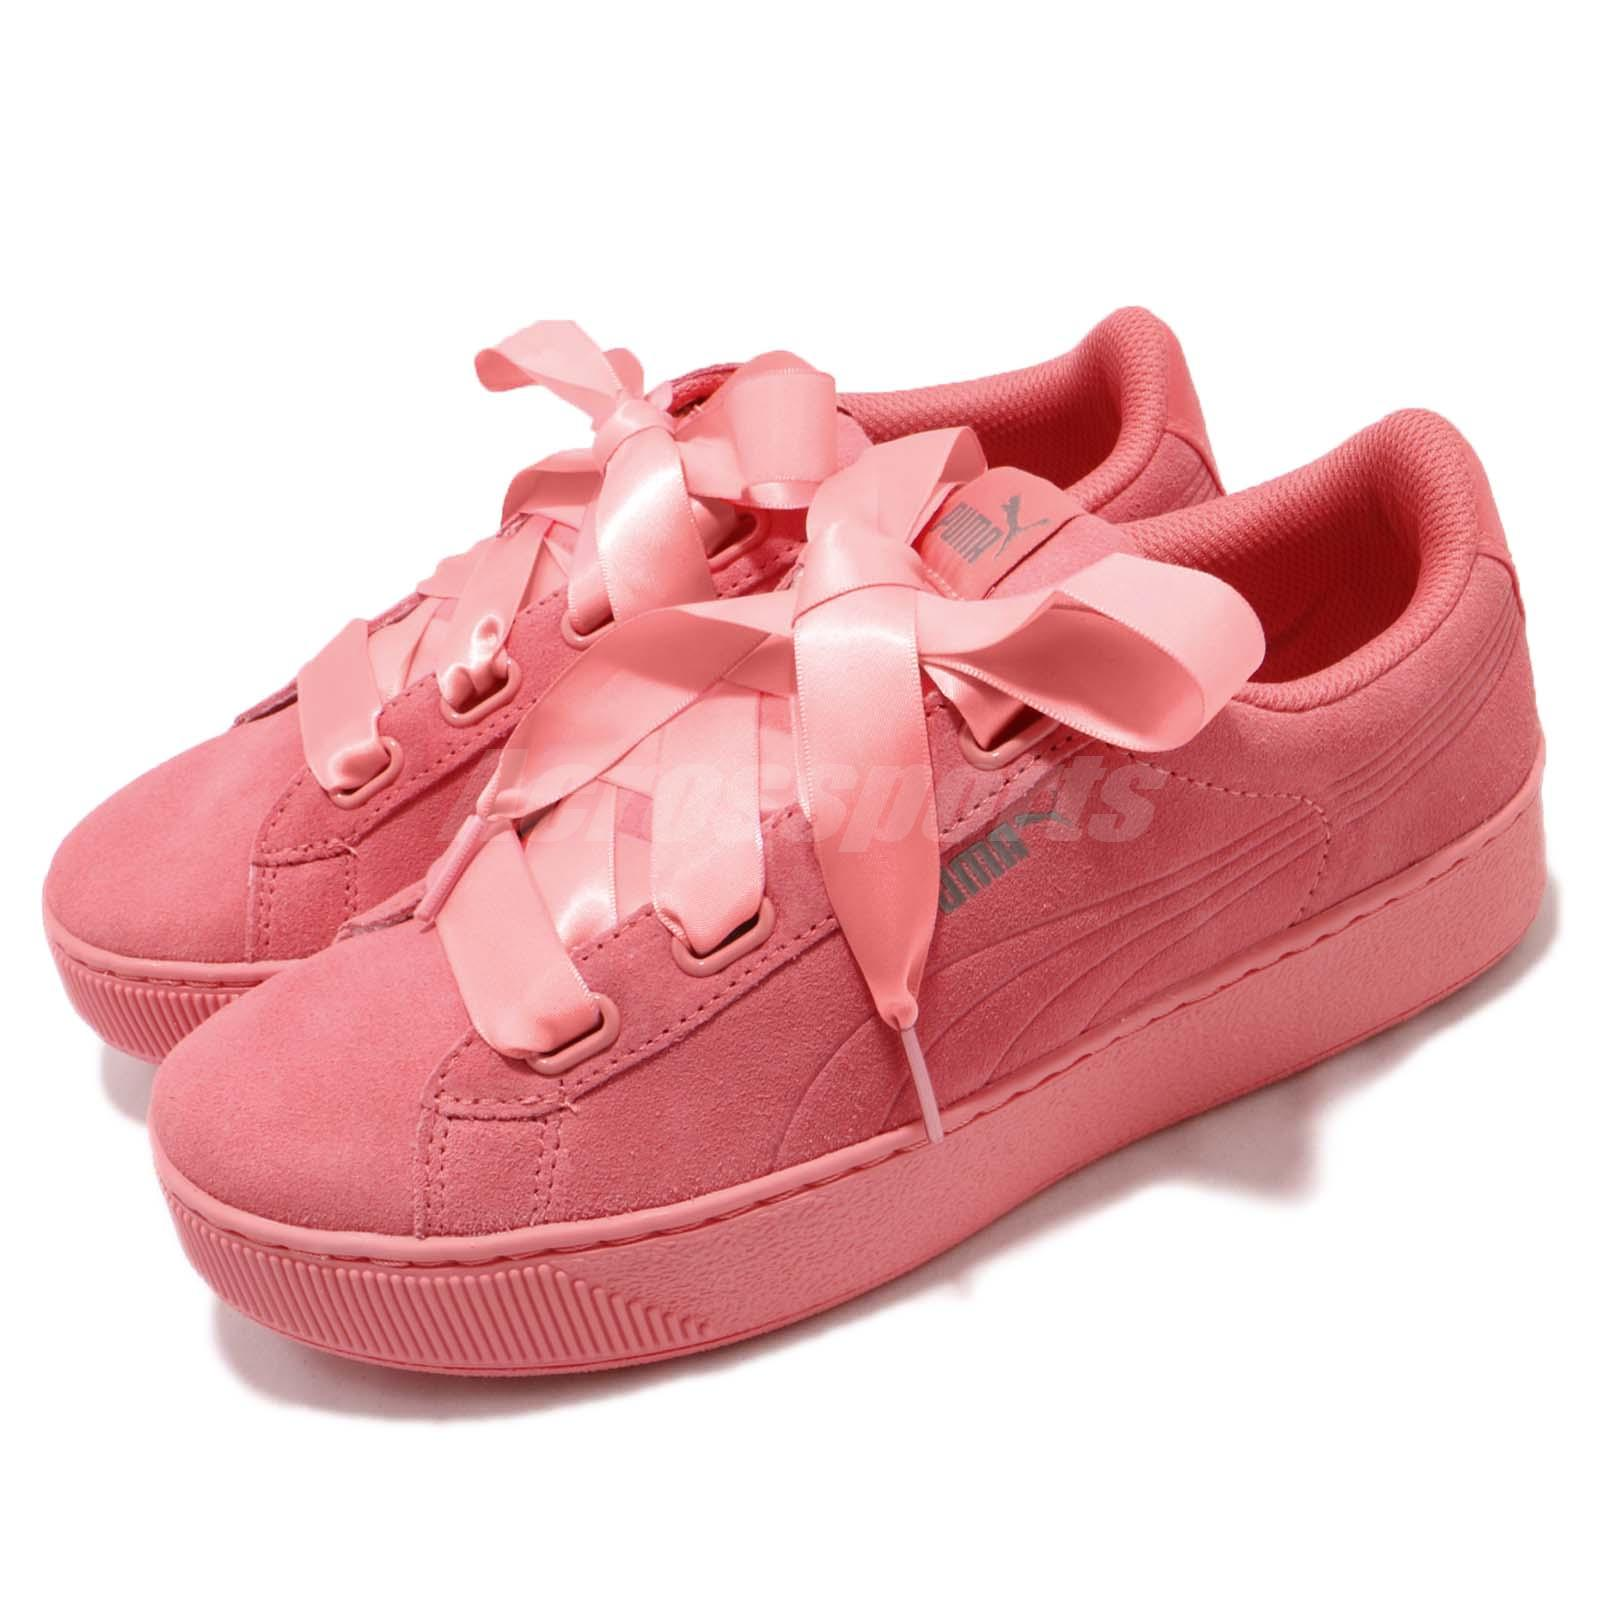 Puma Vikky Platform Ribbon S Bow Bold Shell Pink Women Casual Shoes 366418 03